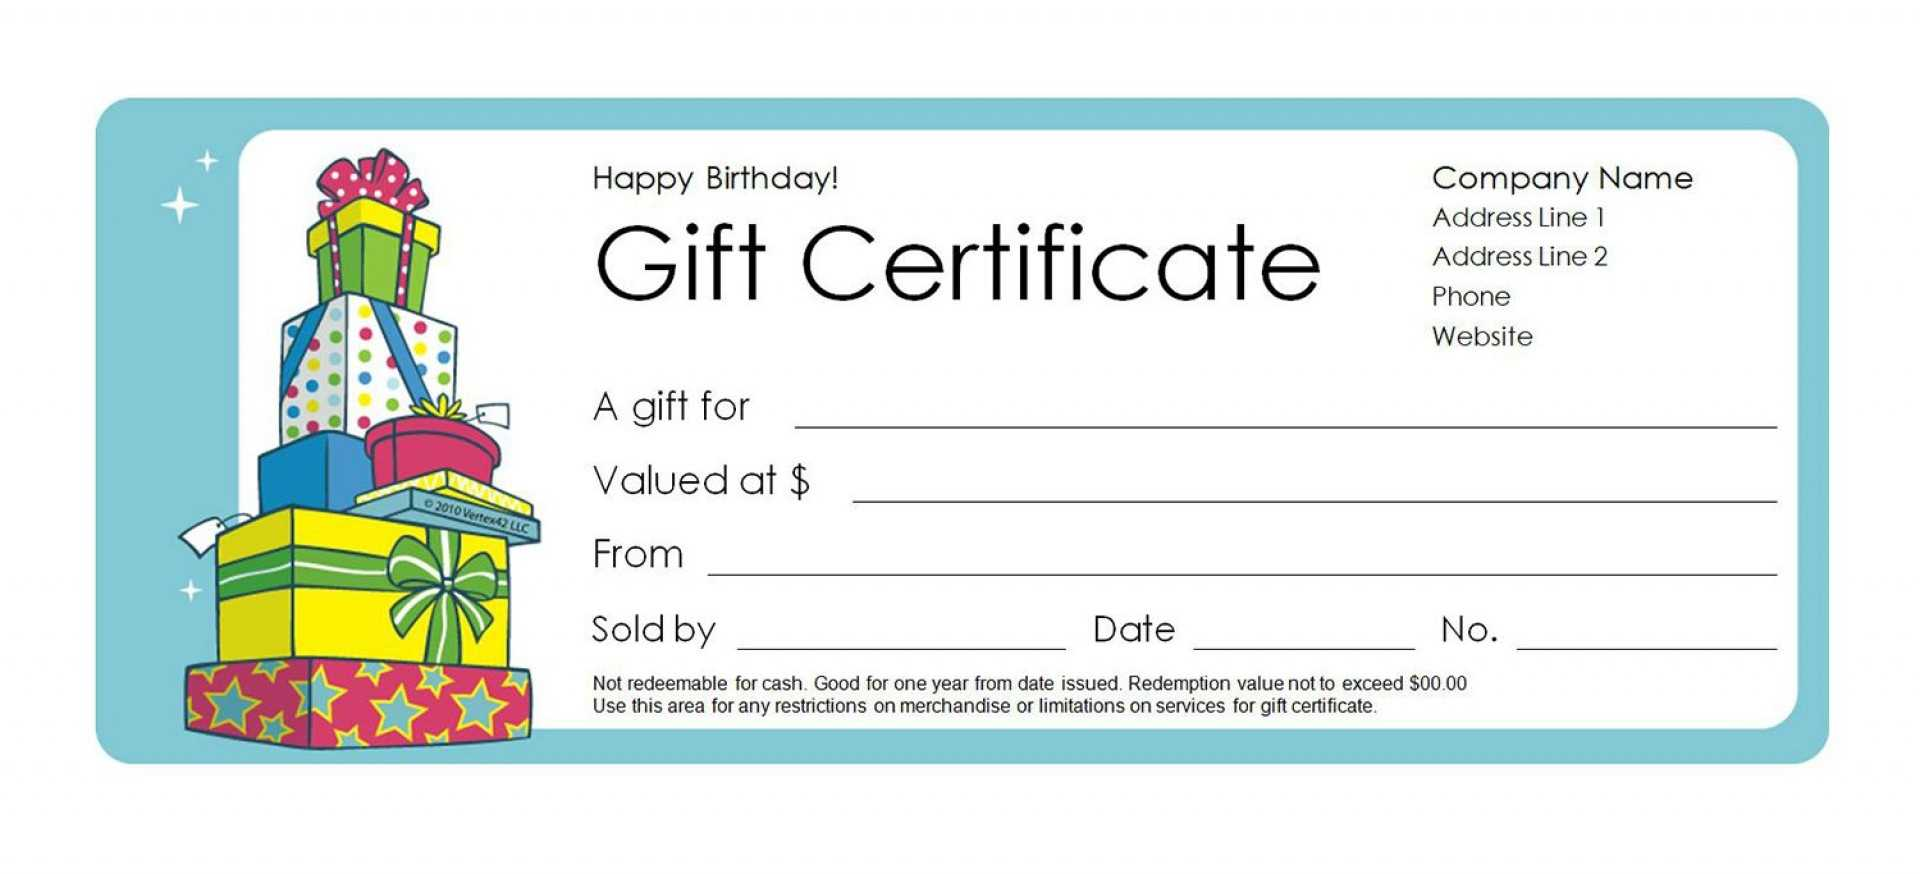 045 Gift Certificate Template Pages Printable Super Star Throughout Star Certificate Templates Free